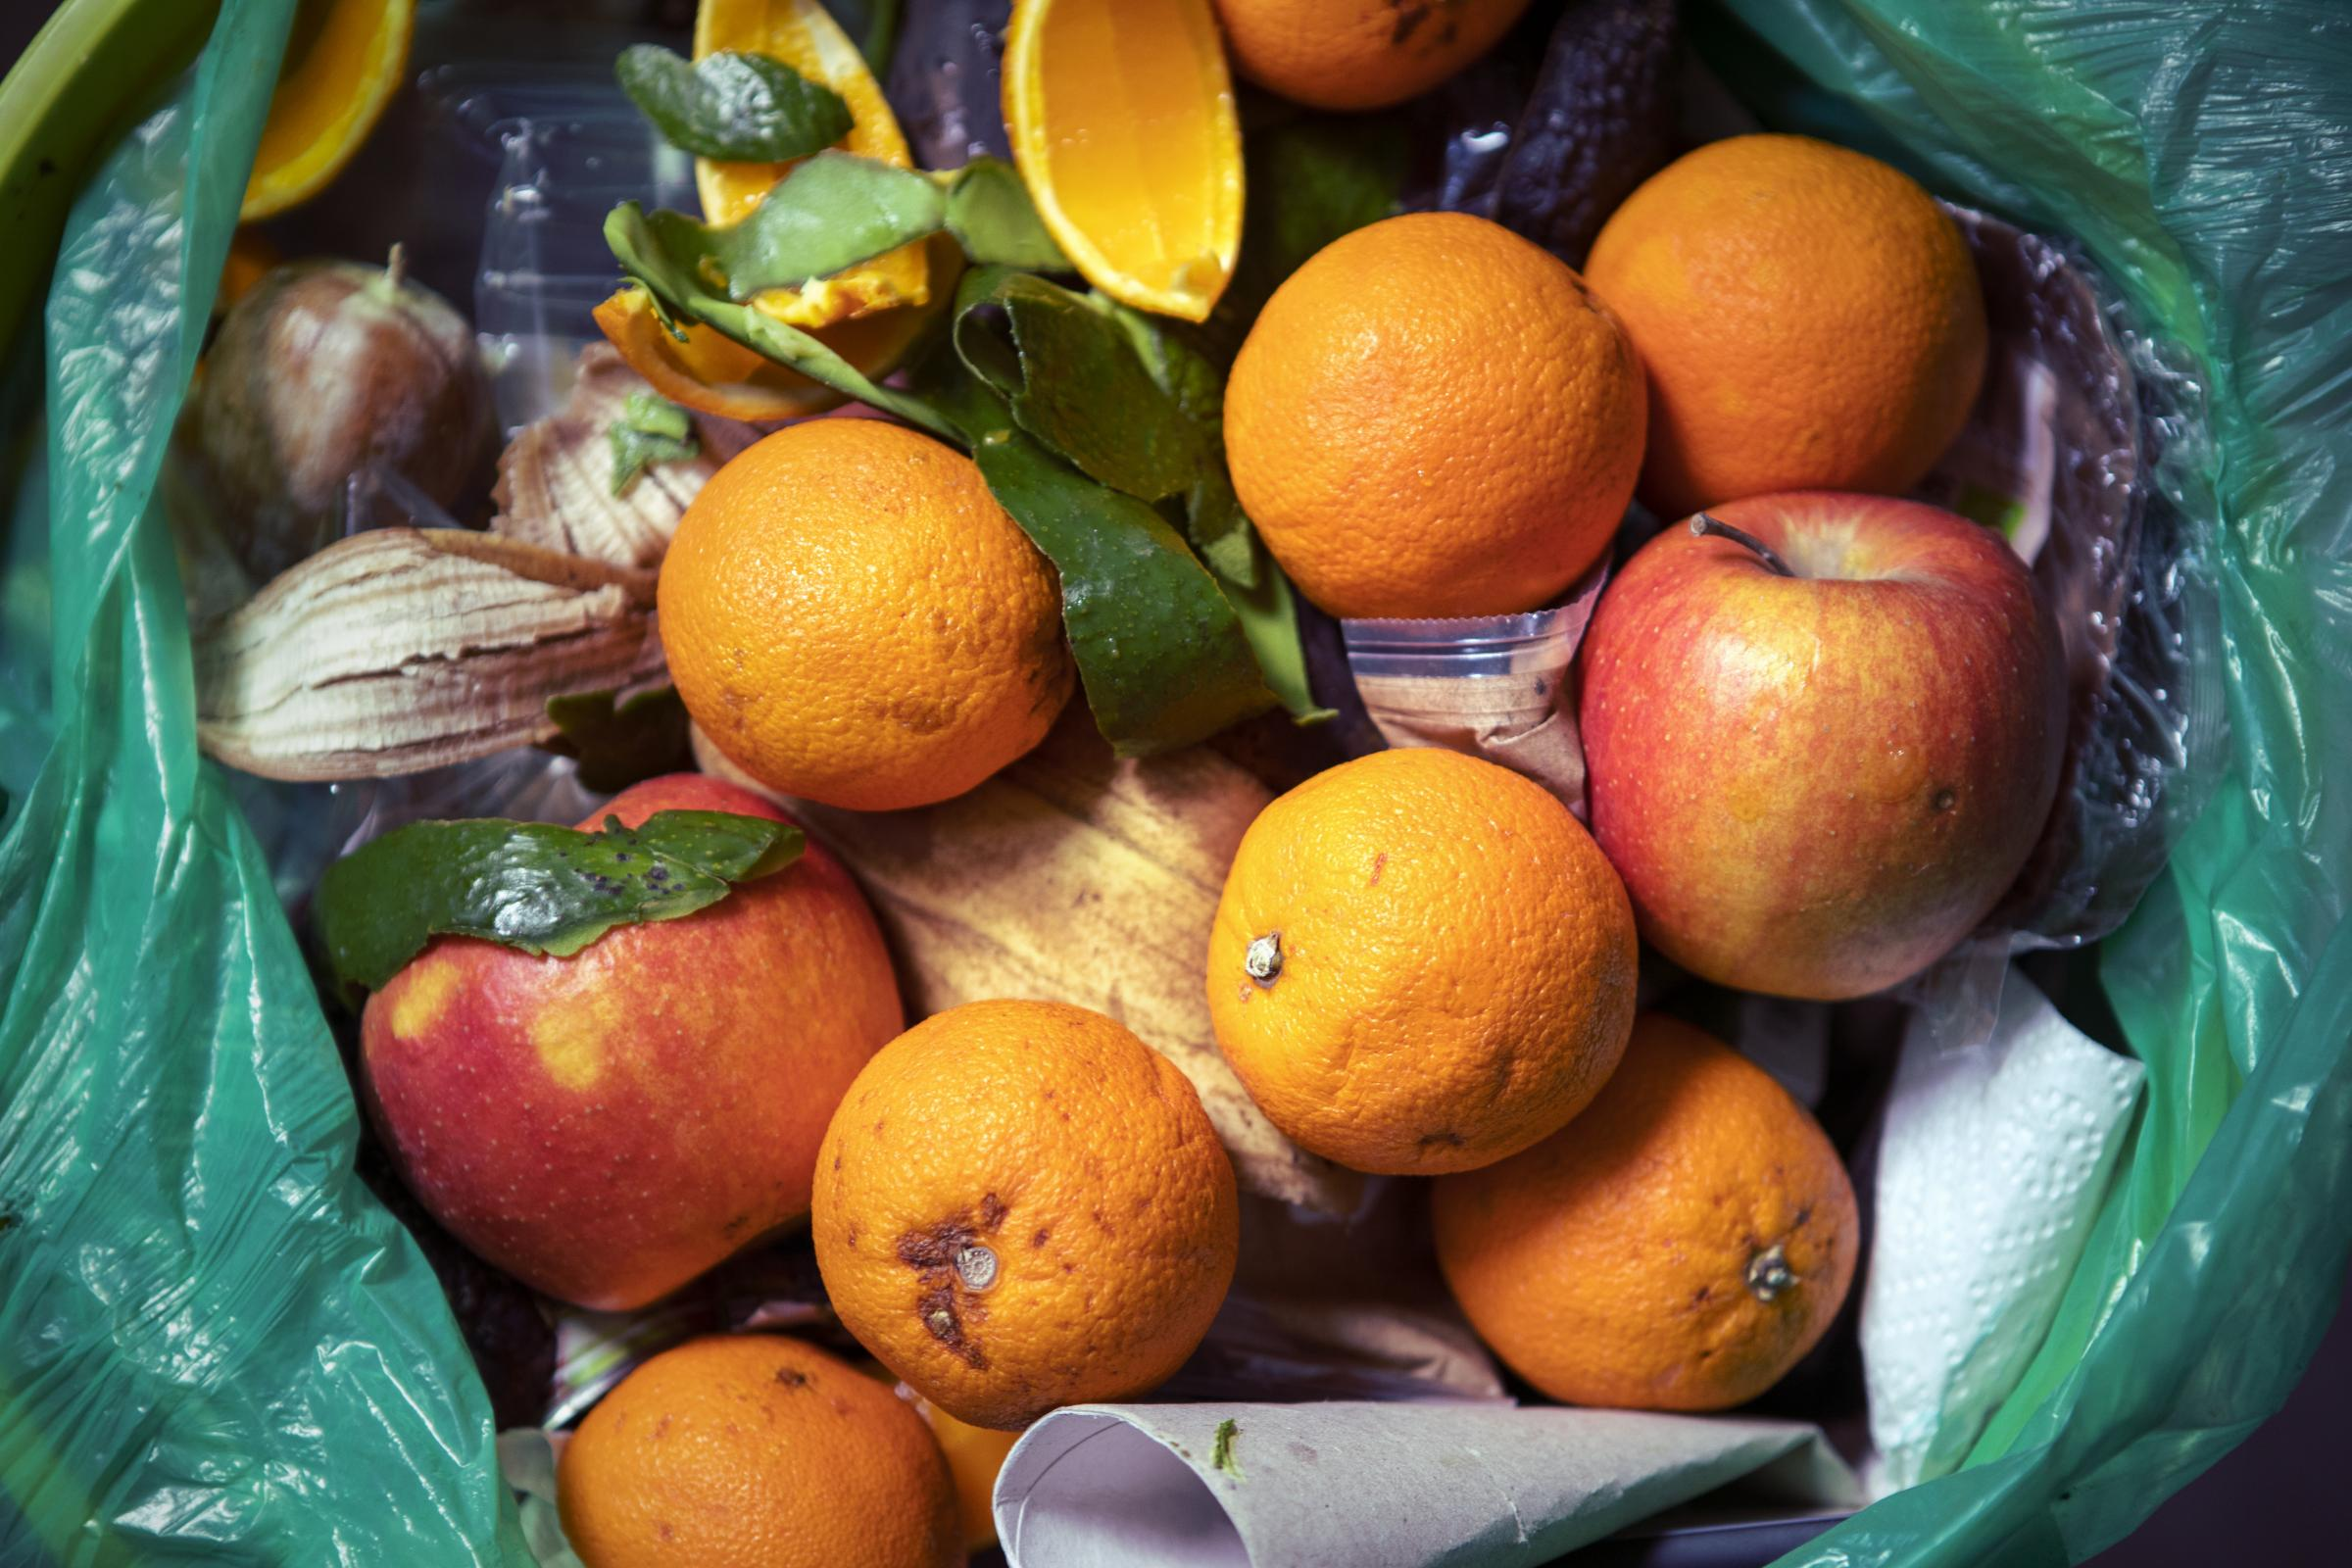 Plate up for Glasgow is aimed at sustainability and reducing food waste